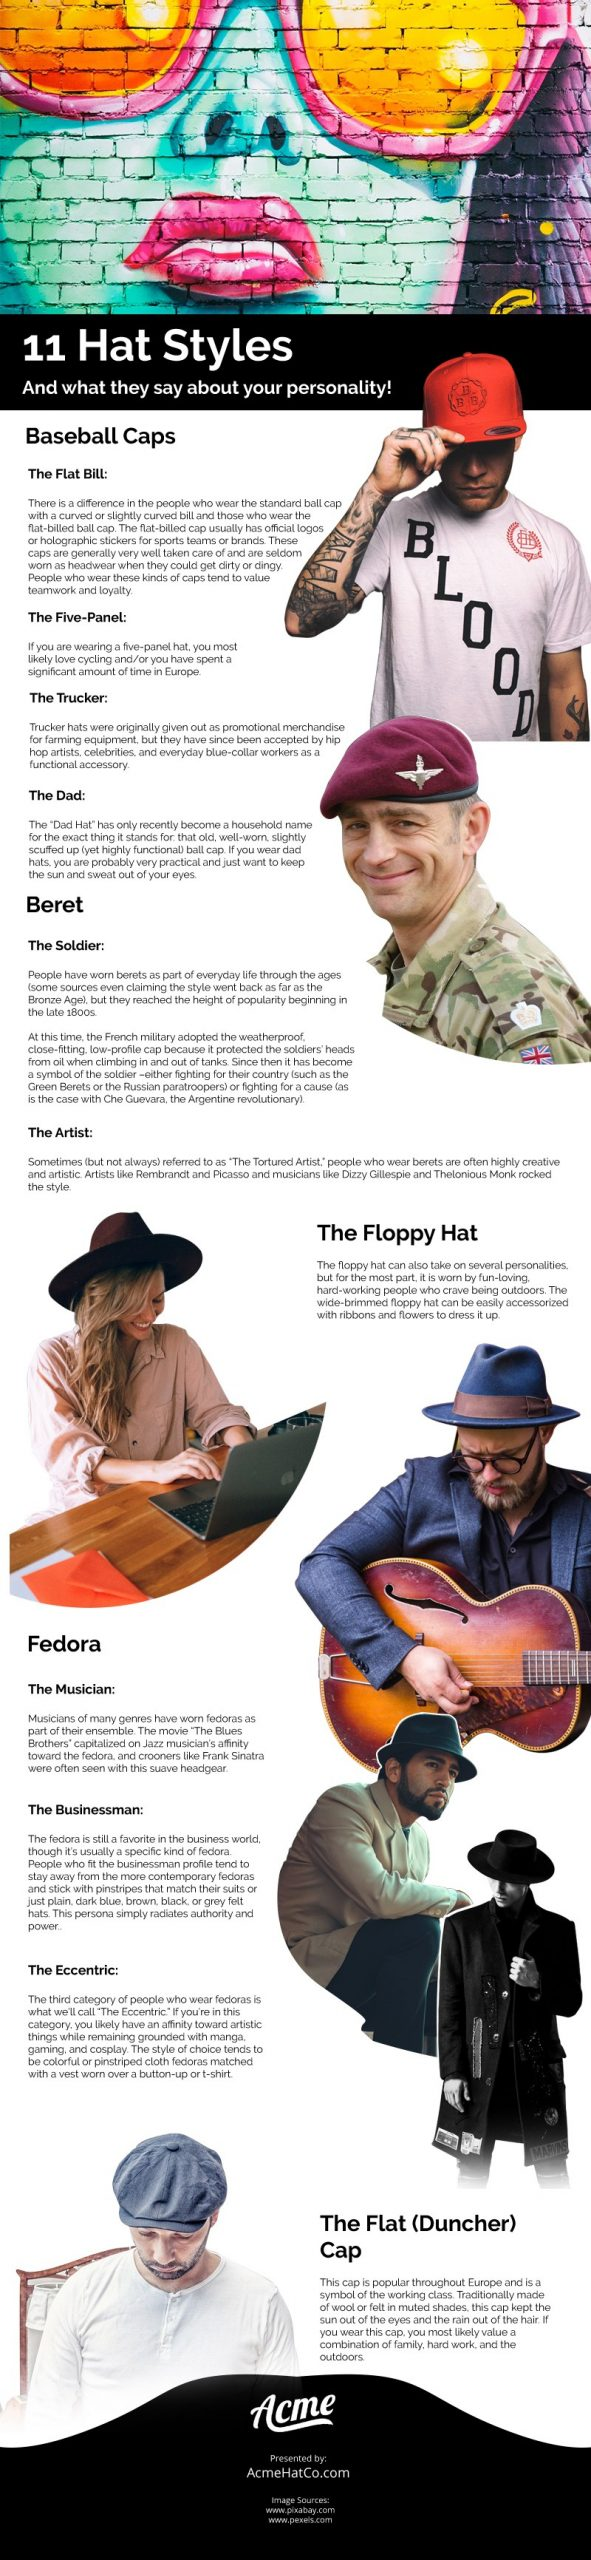 11 Hat Styles And What They Say About Your Personality Infographic